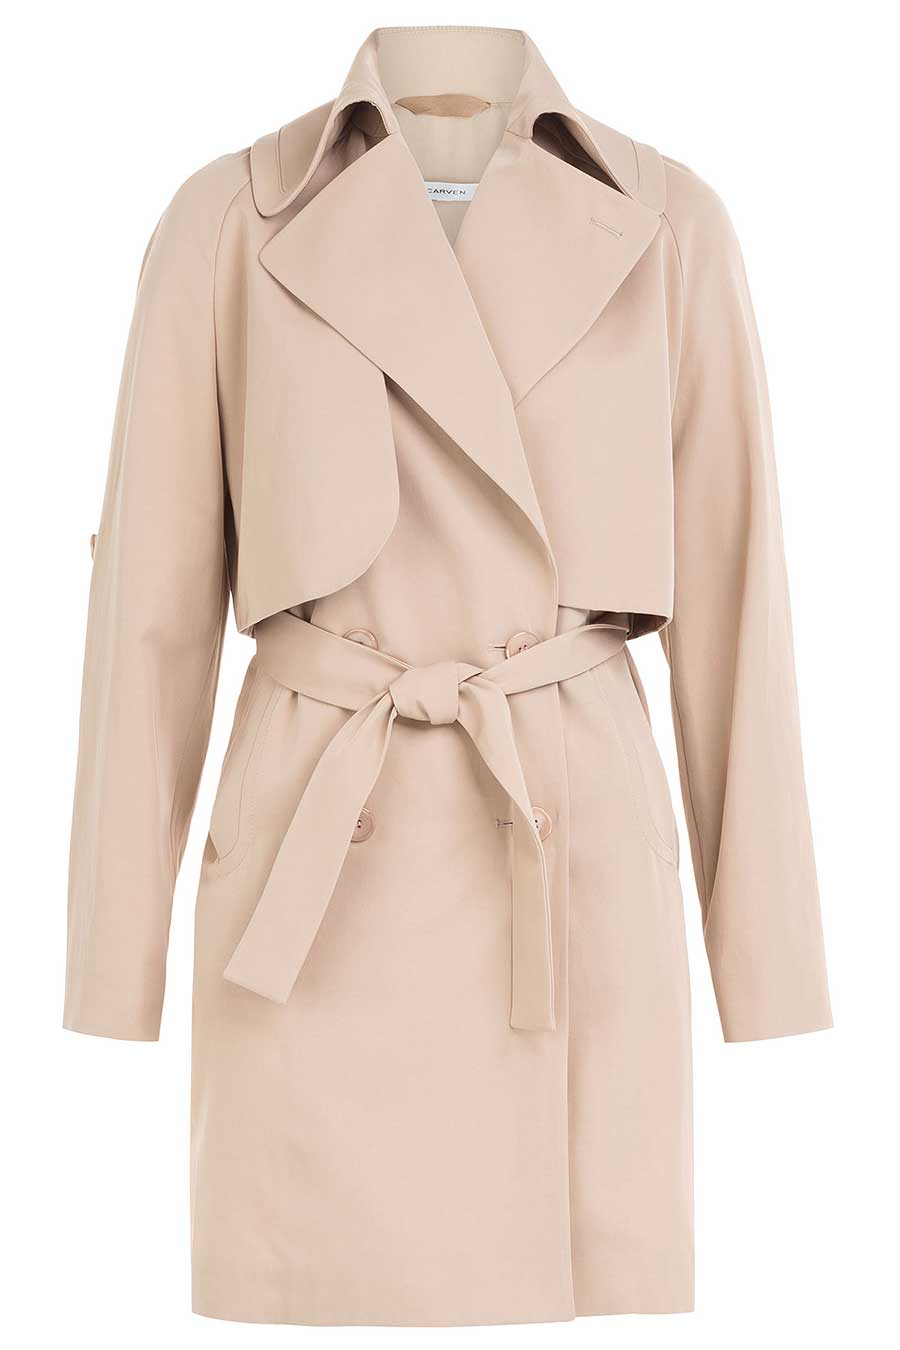 carven-trench